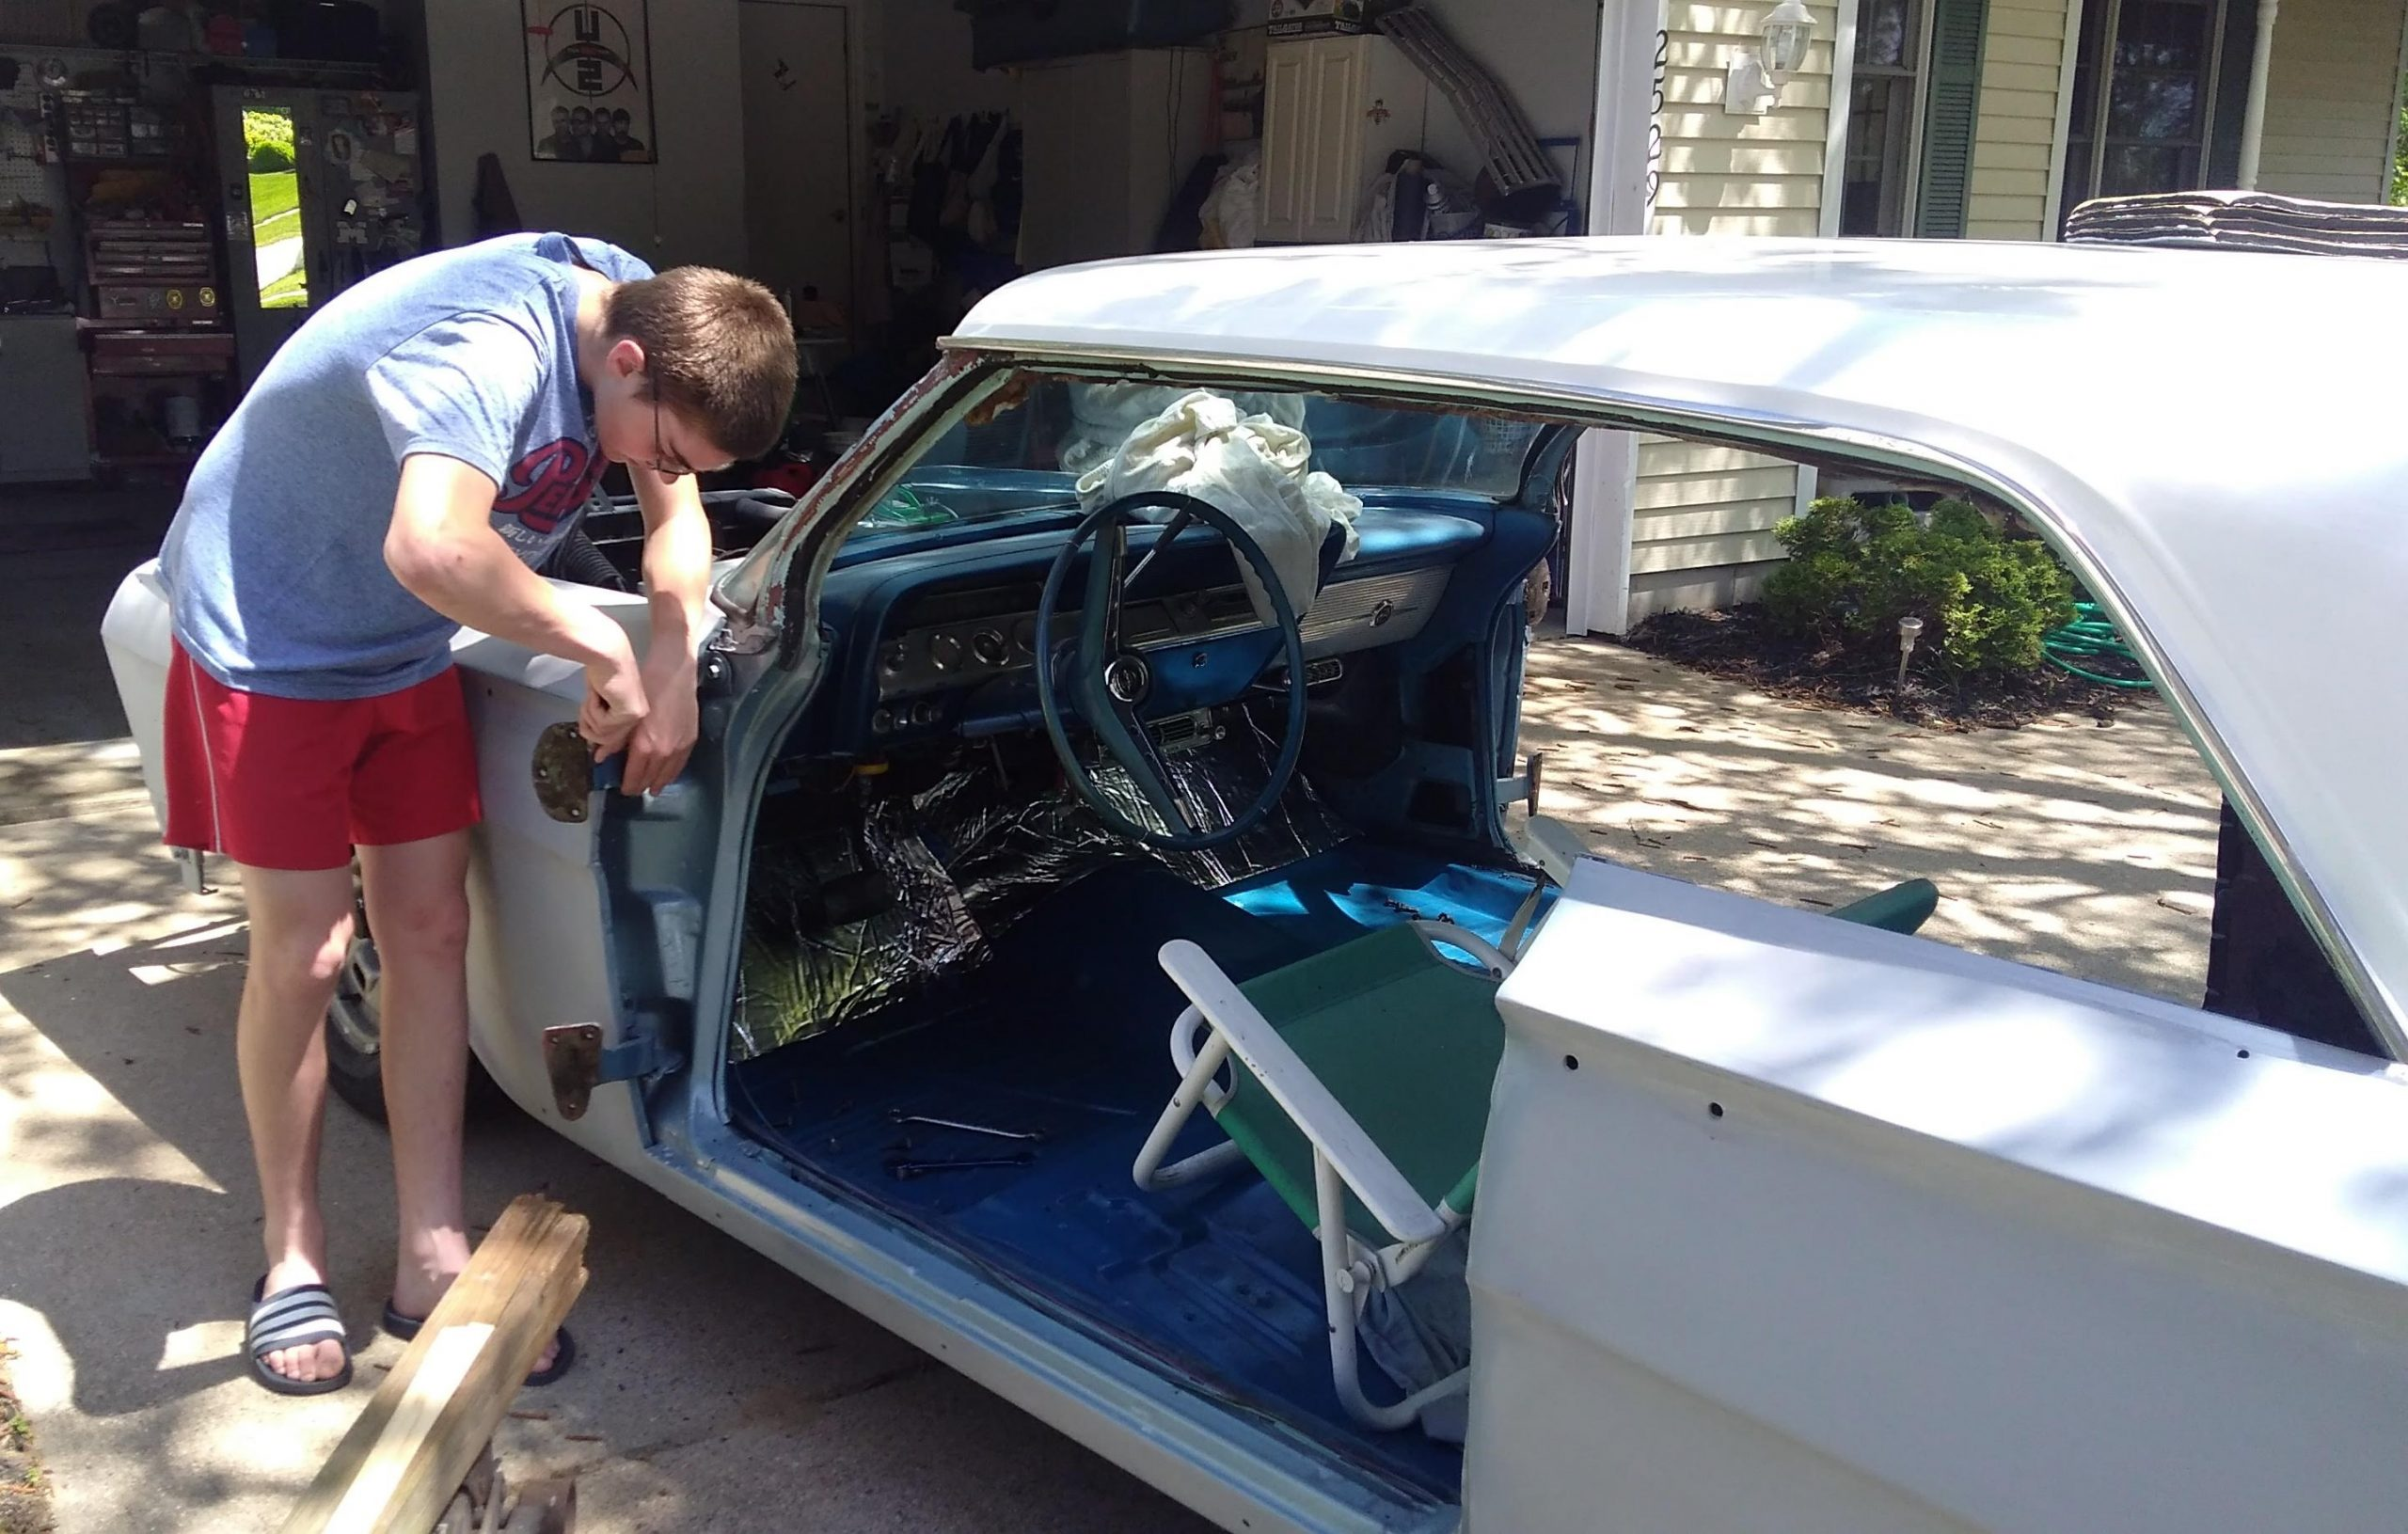 Jason Prince - 1962 Chevrolet Impala - Before resto - Noah working on door